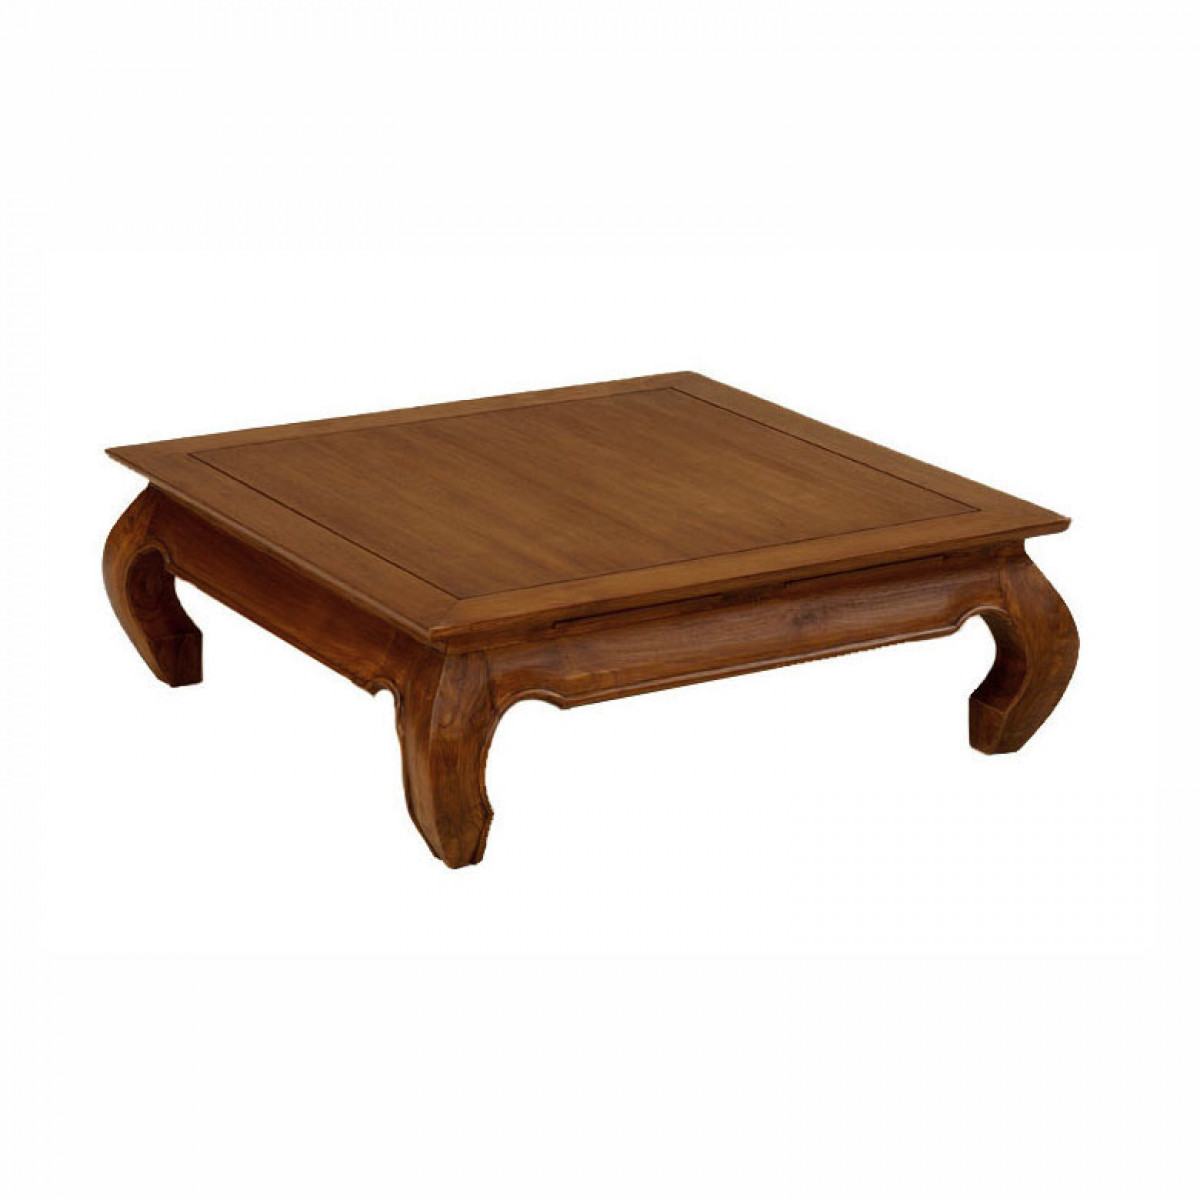 Table Basse Carree En Teck Modele Opium 100 X 100 Cm 6503